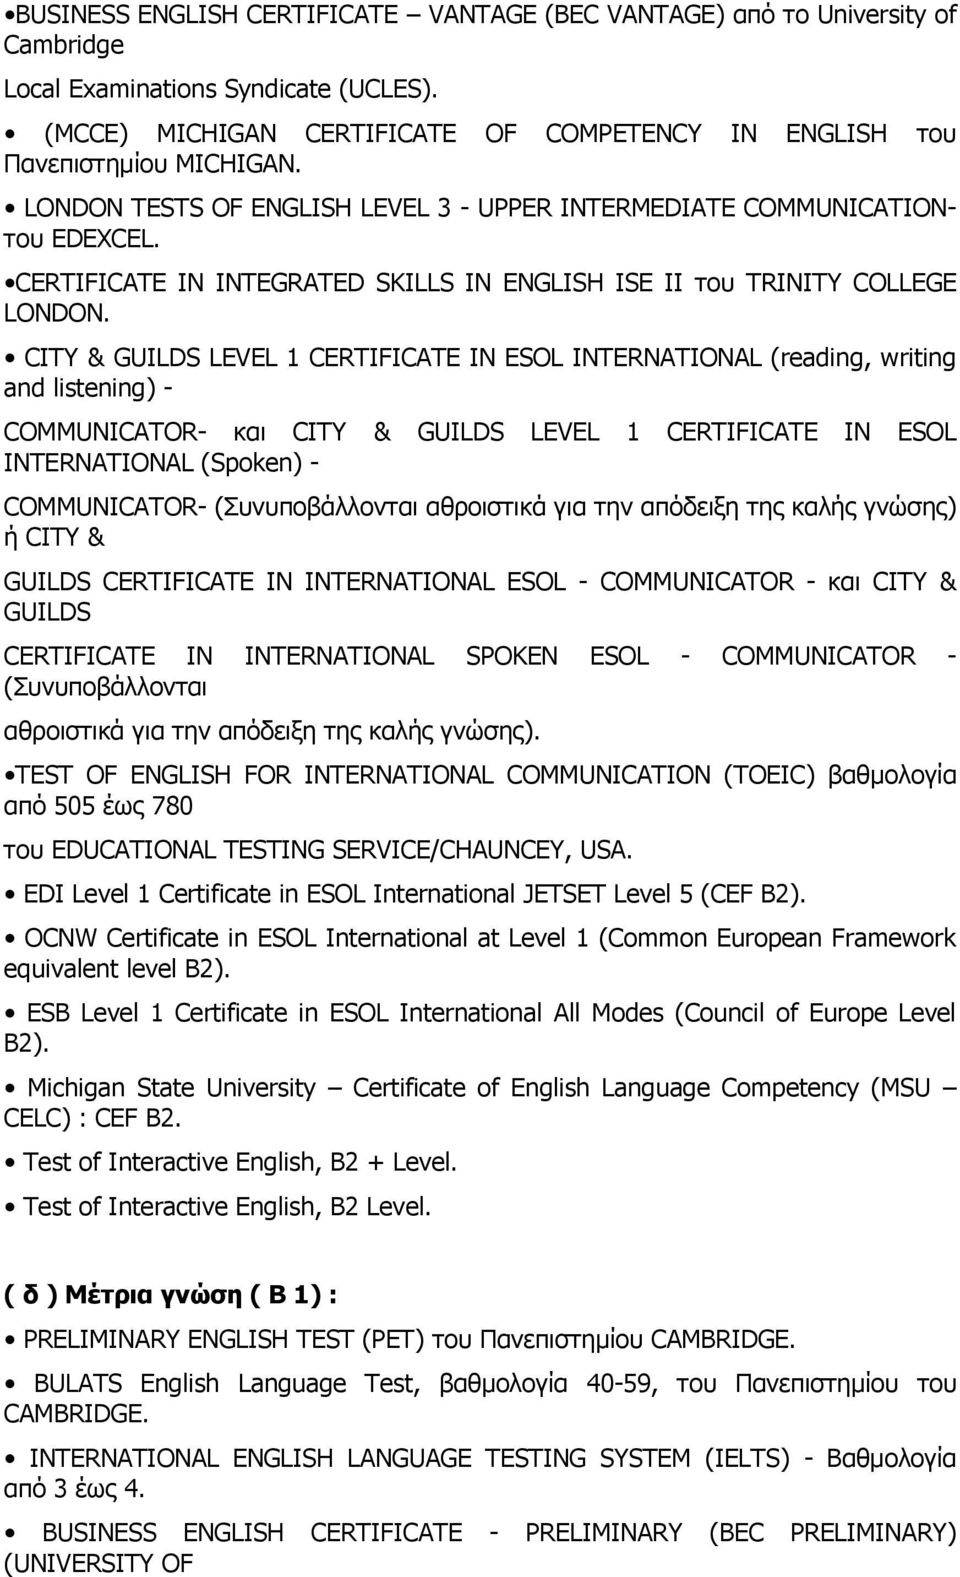 CITY & GUILDS LEVEL 1 CERTIFICATE IN ESOL INTERNATIONAL (reading, writing and listening) - COMMUNICATOR- και CITY & GUILDS LEVEL 1 CERTIFICATE IN ESOL INTERNATIONAL (Spoken) - COMMUNICATOR-